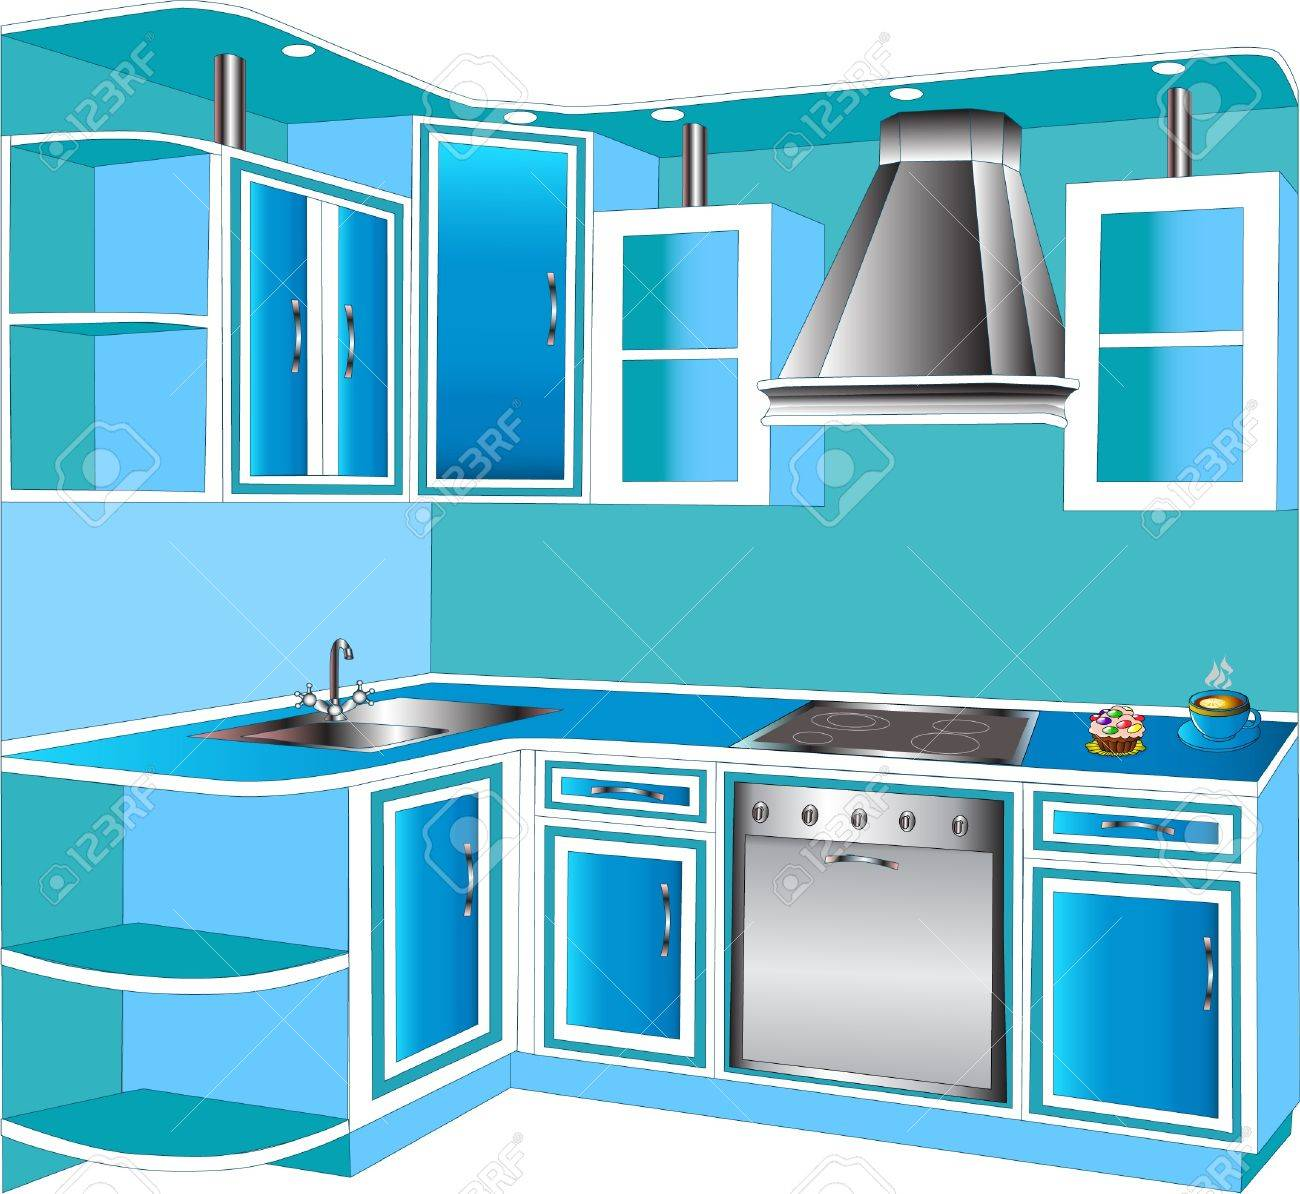 Furniture For Kitchens Furniture For Interior Of The Kitchens Of The Blue Color Royalty